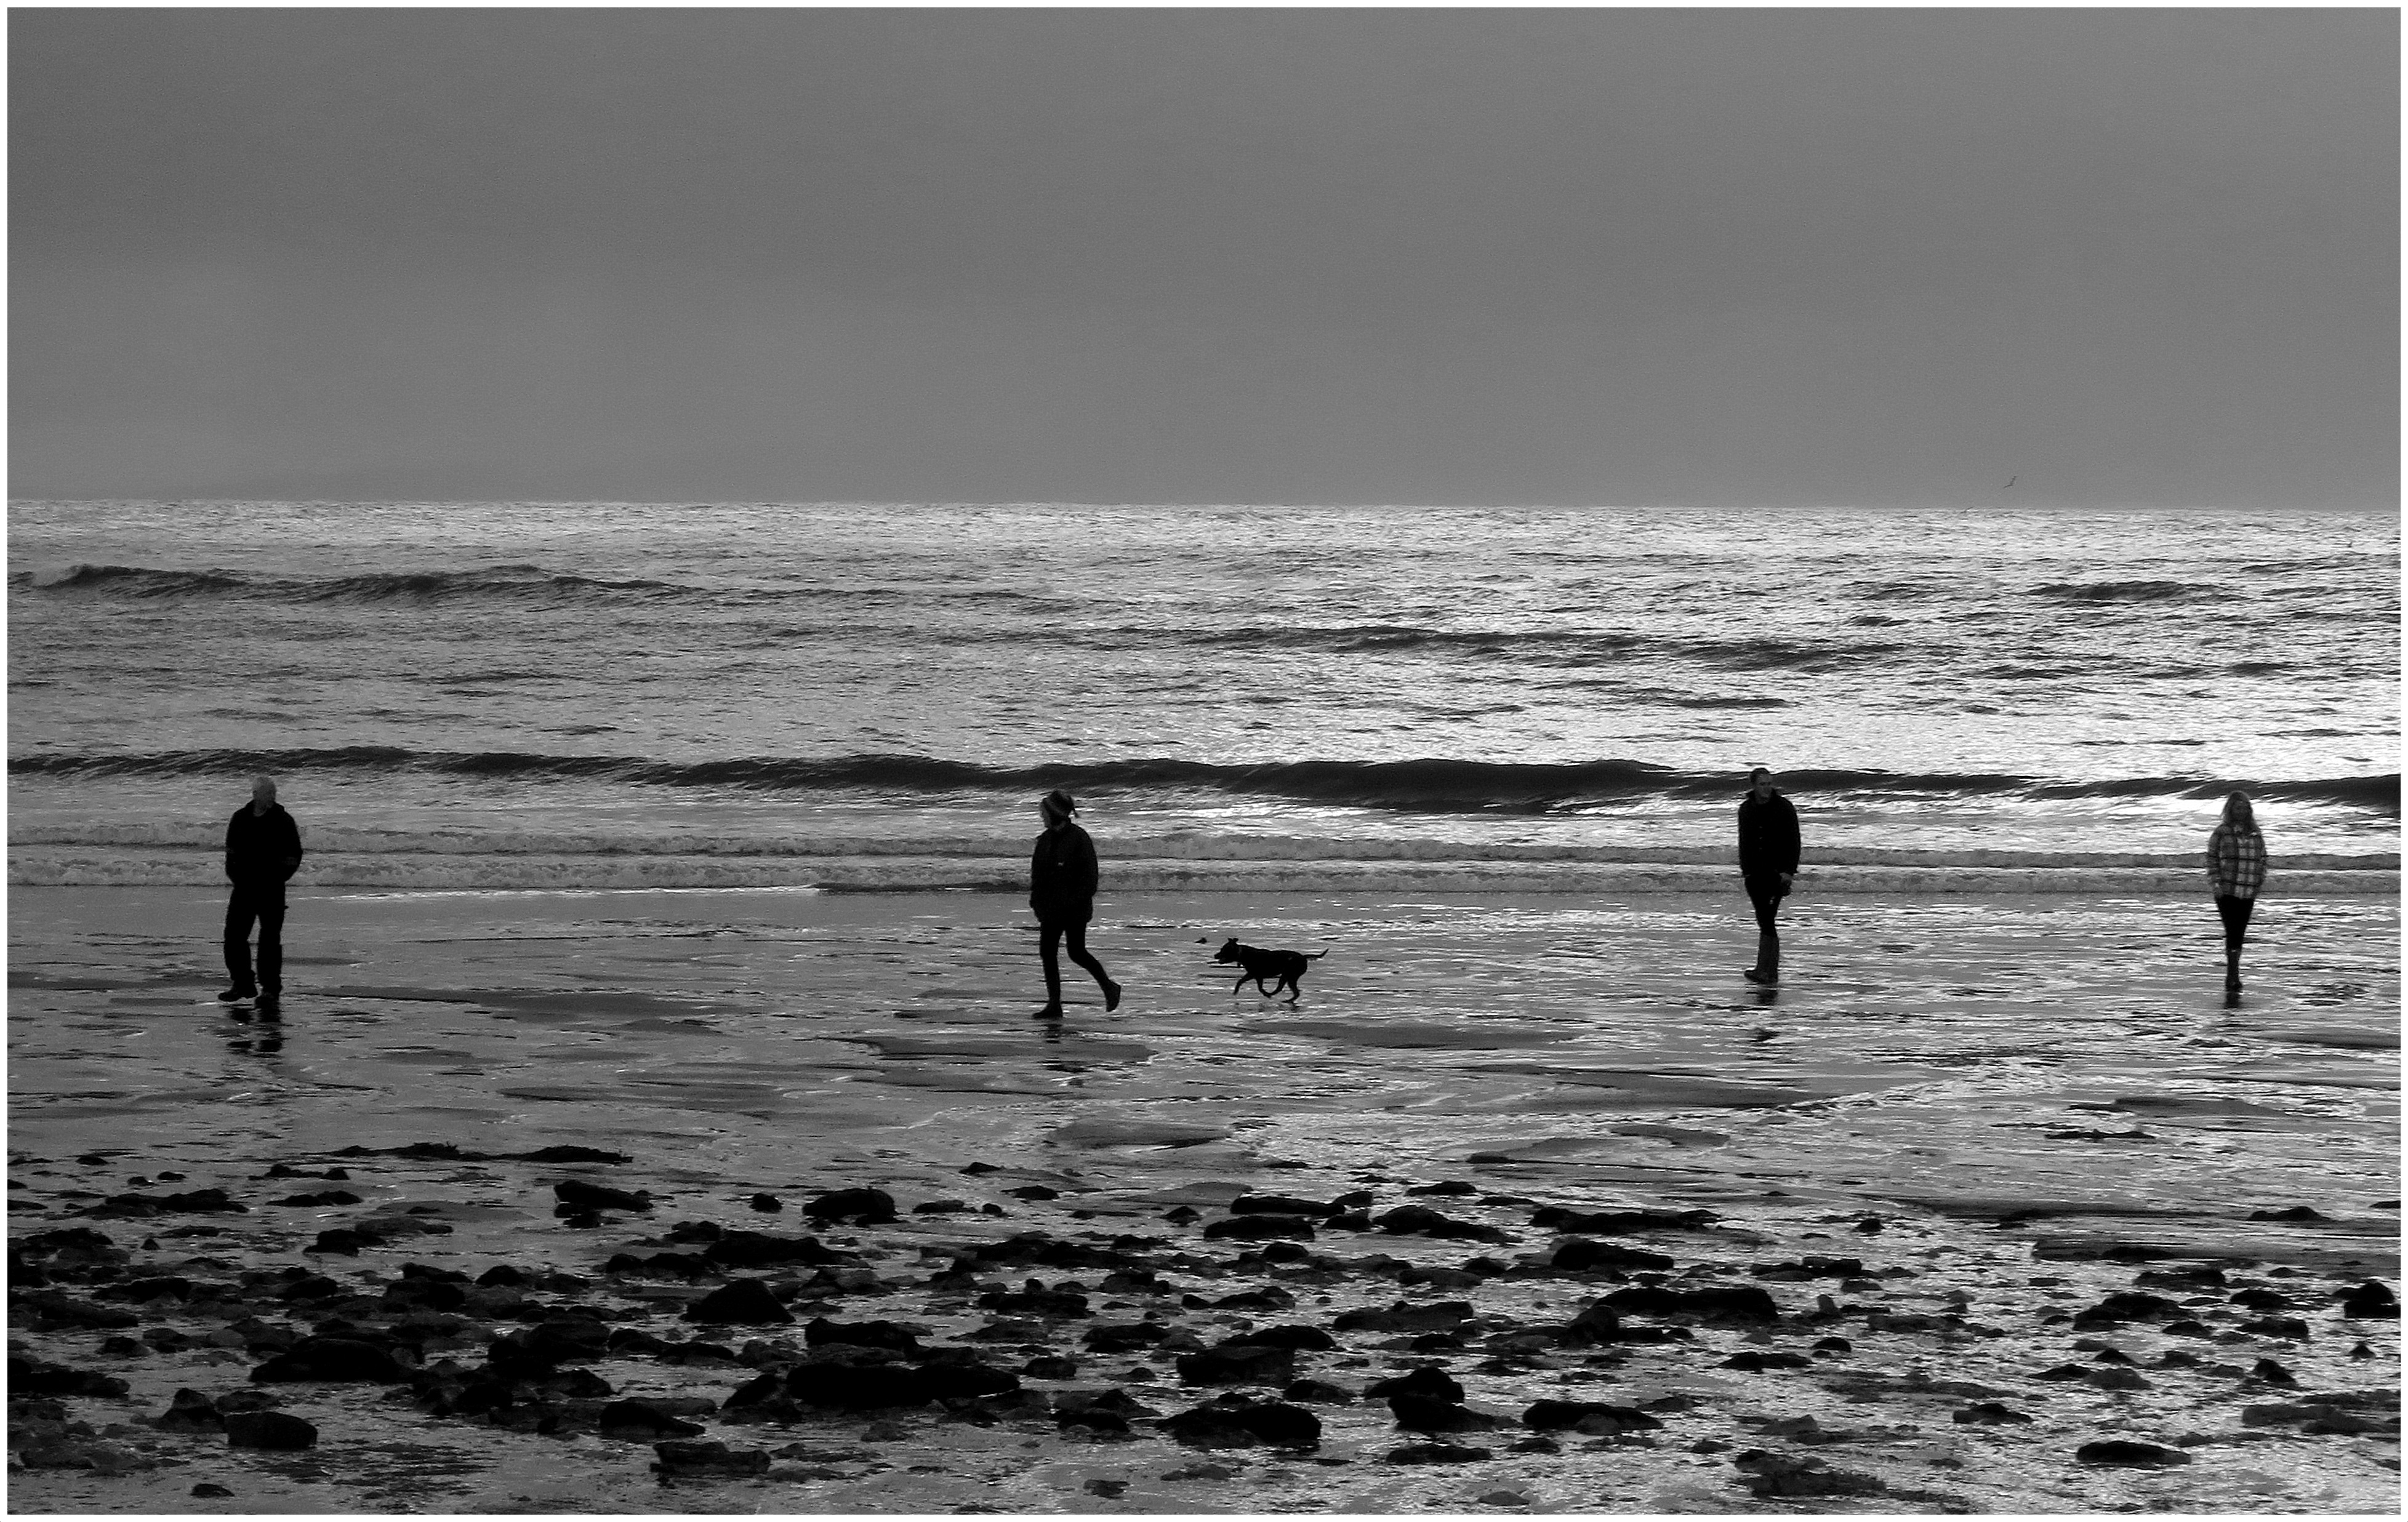 BESIDE THE SEA by Brian Davies